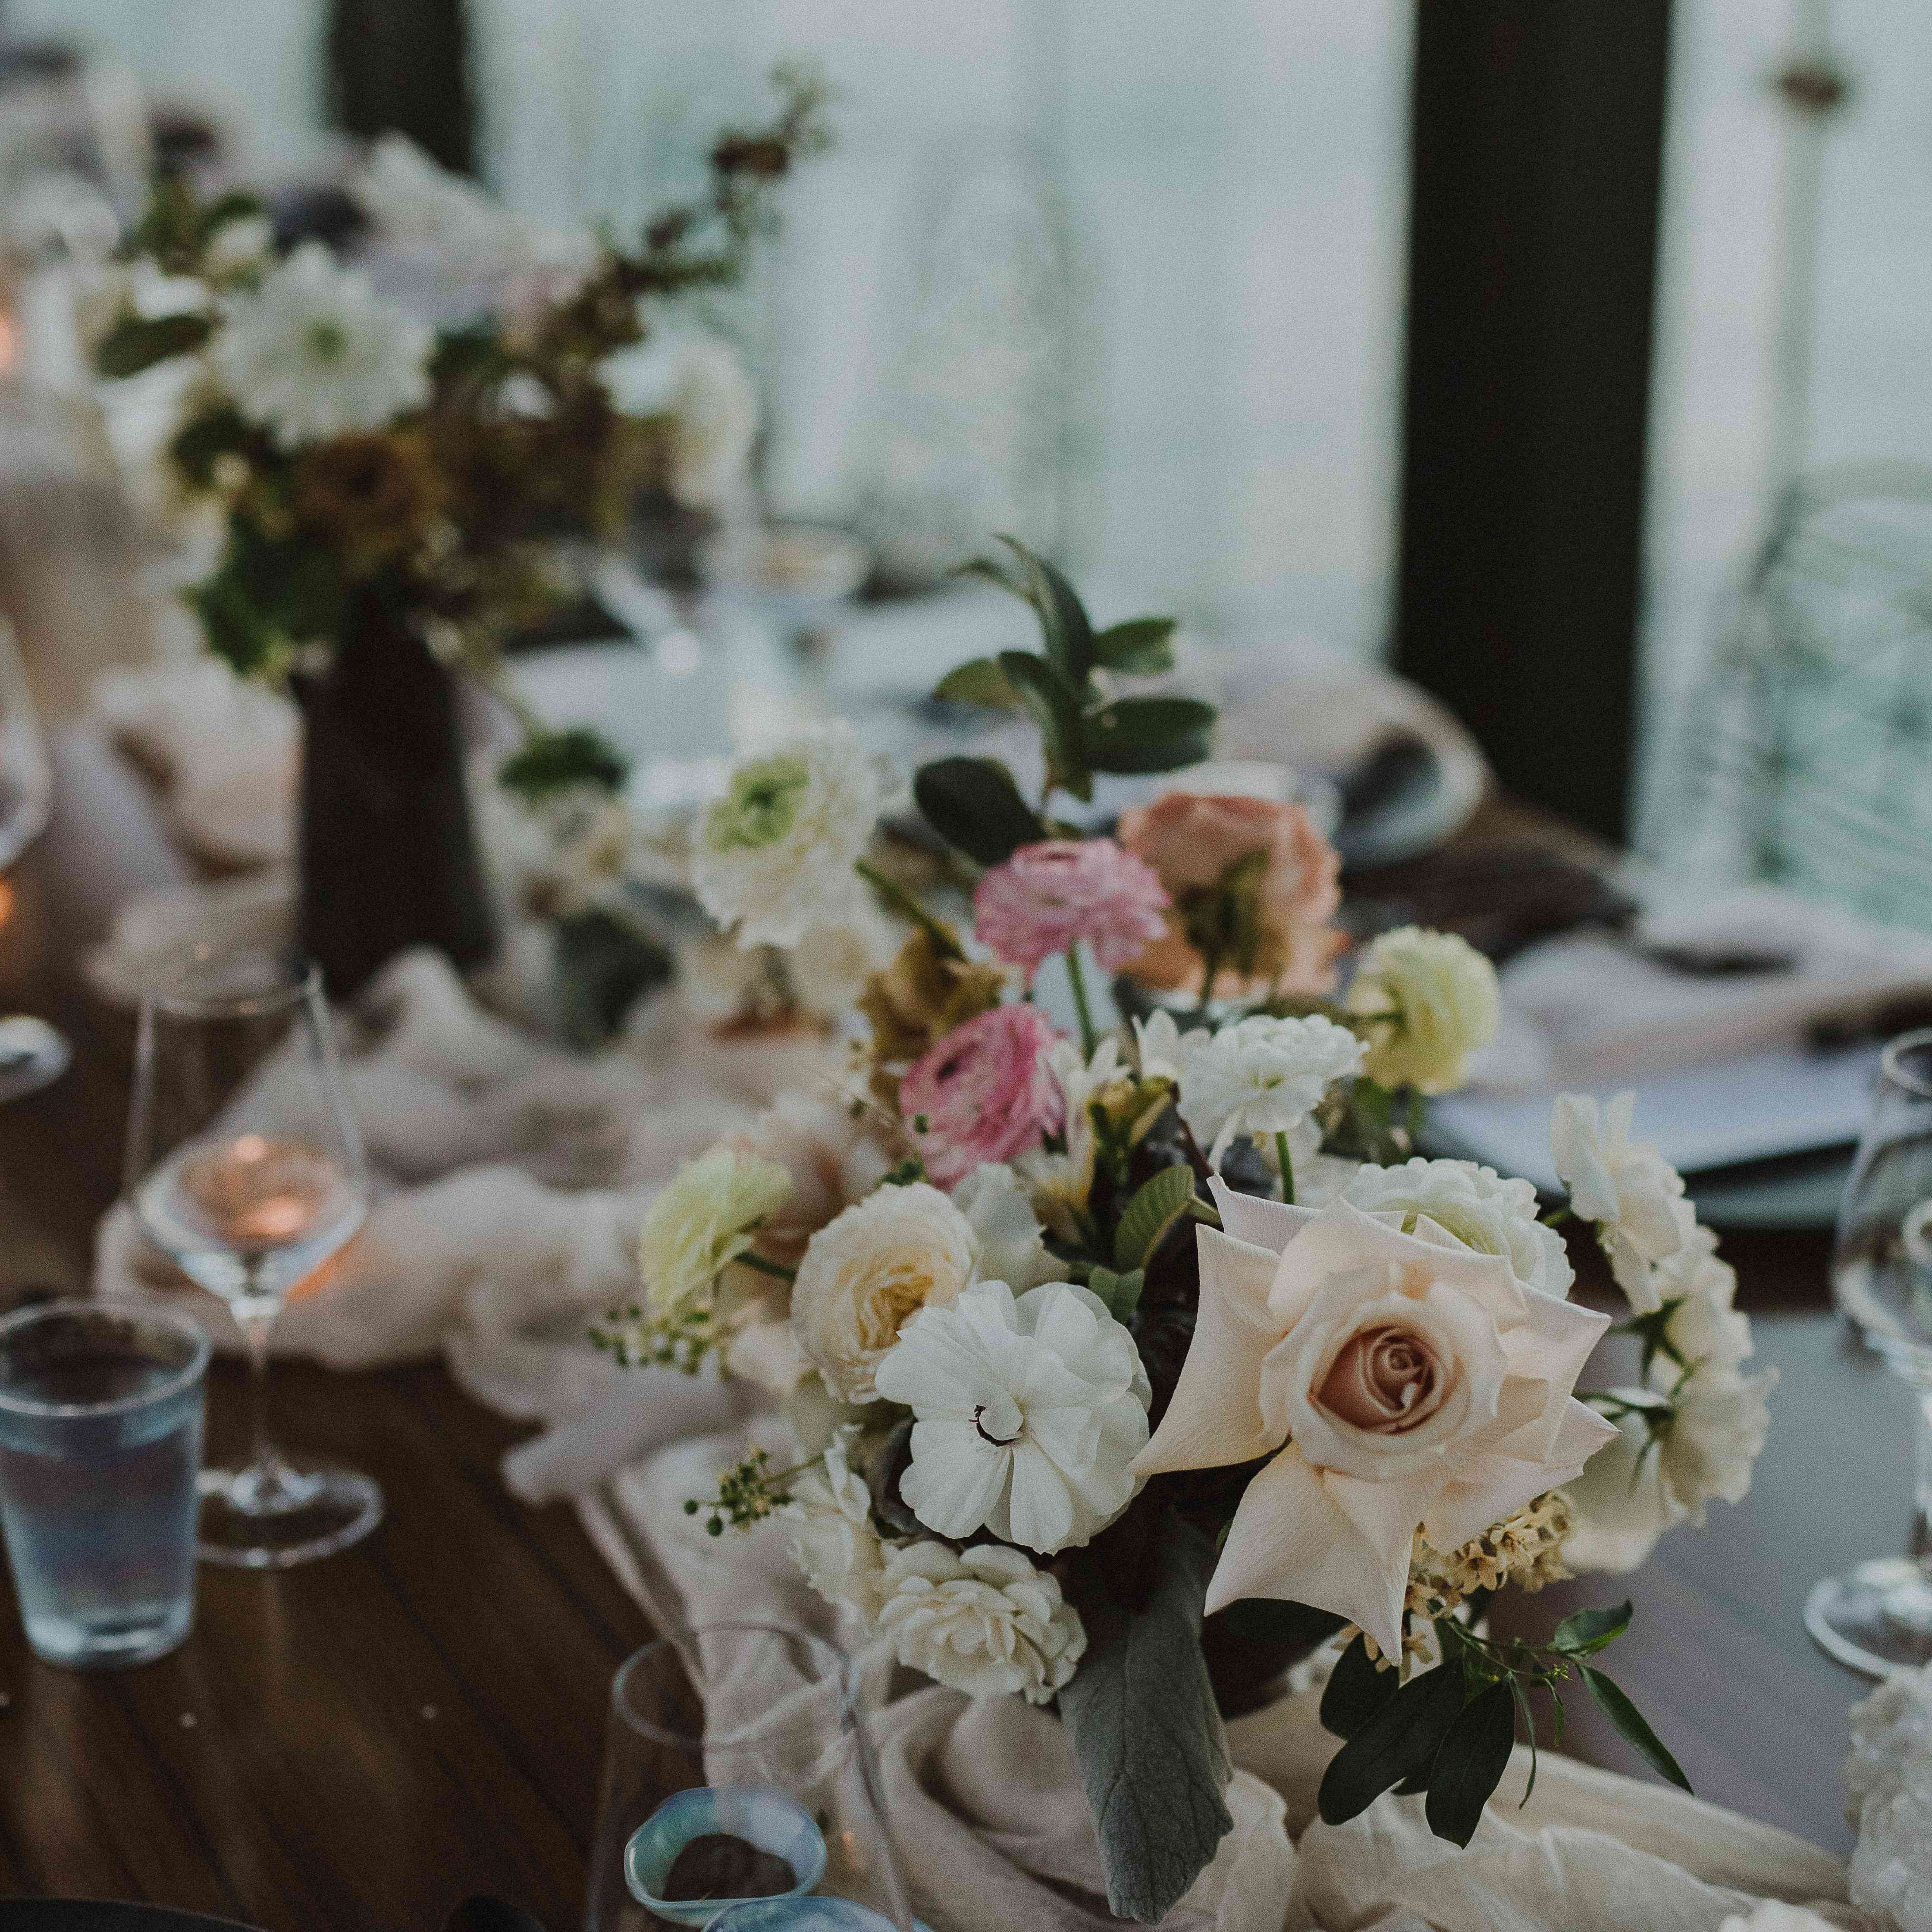 Flower Centerpieces on Table